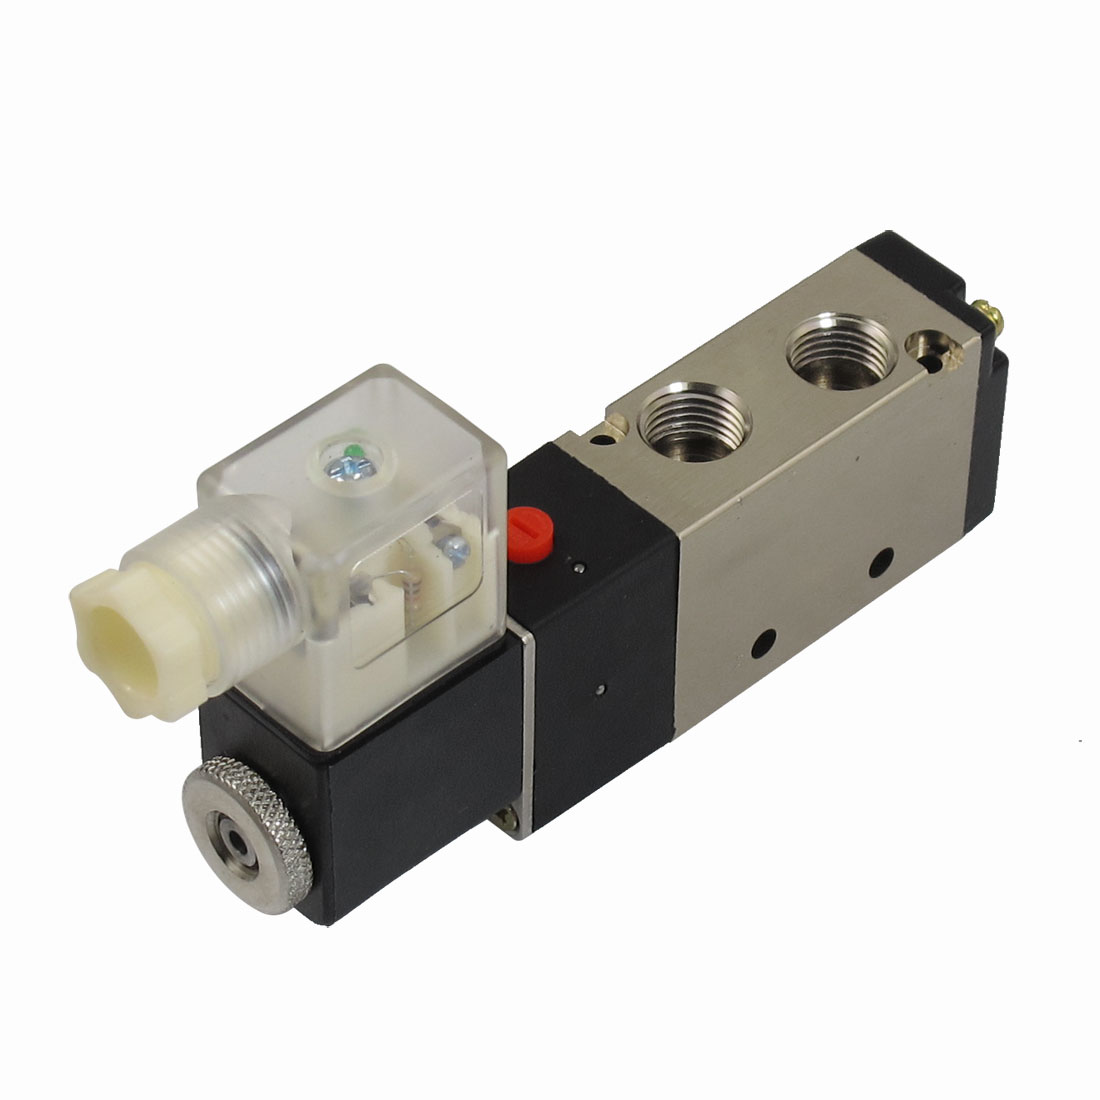 DC 24V 3W 125mA 2 Position 5 Way Pneumatic Electromagnetic Solenoid Valve G1/4""